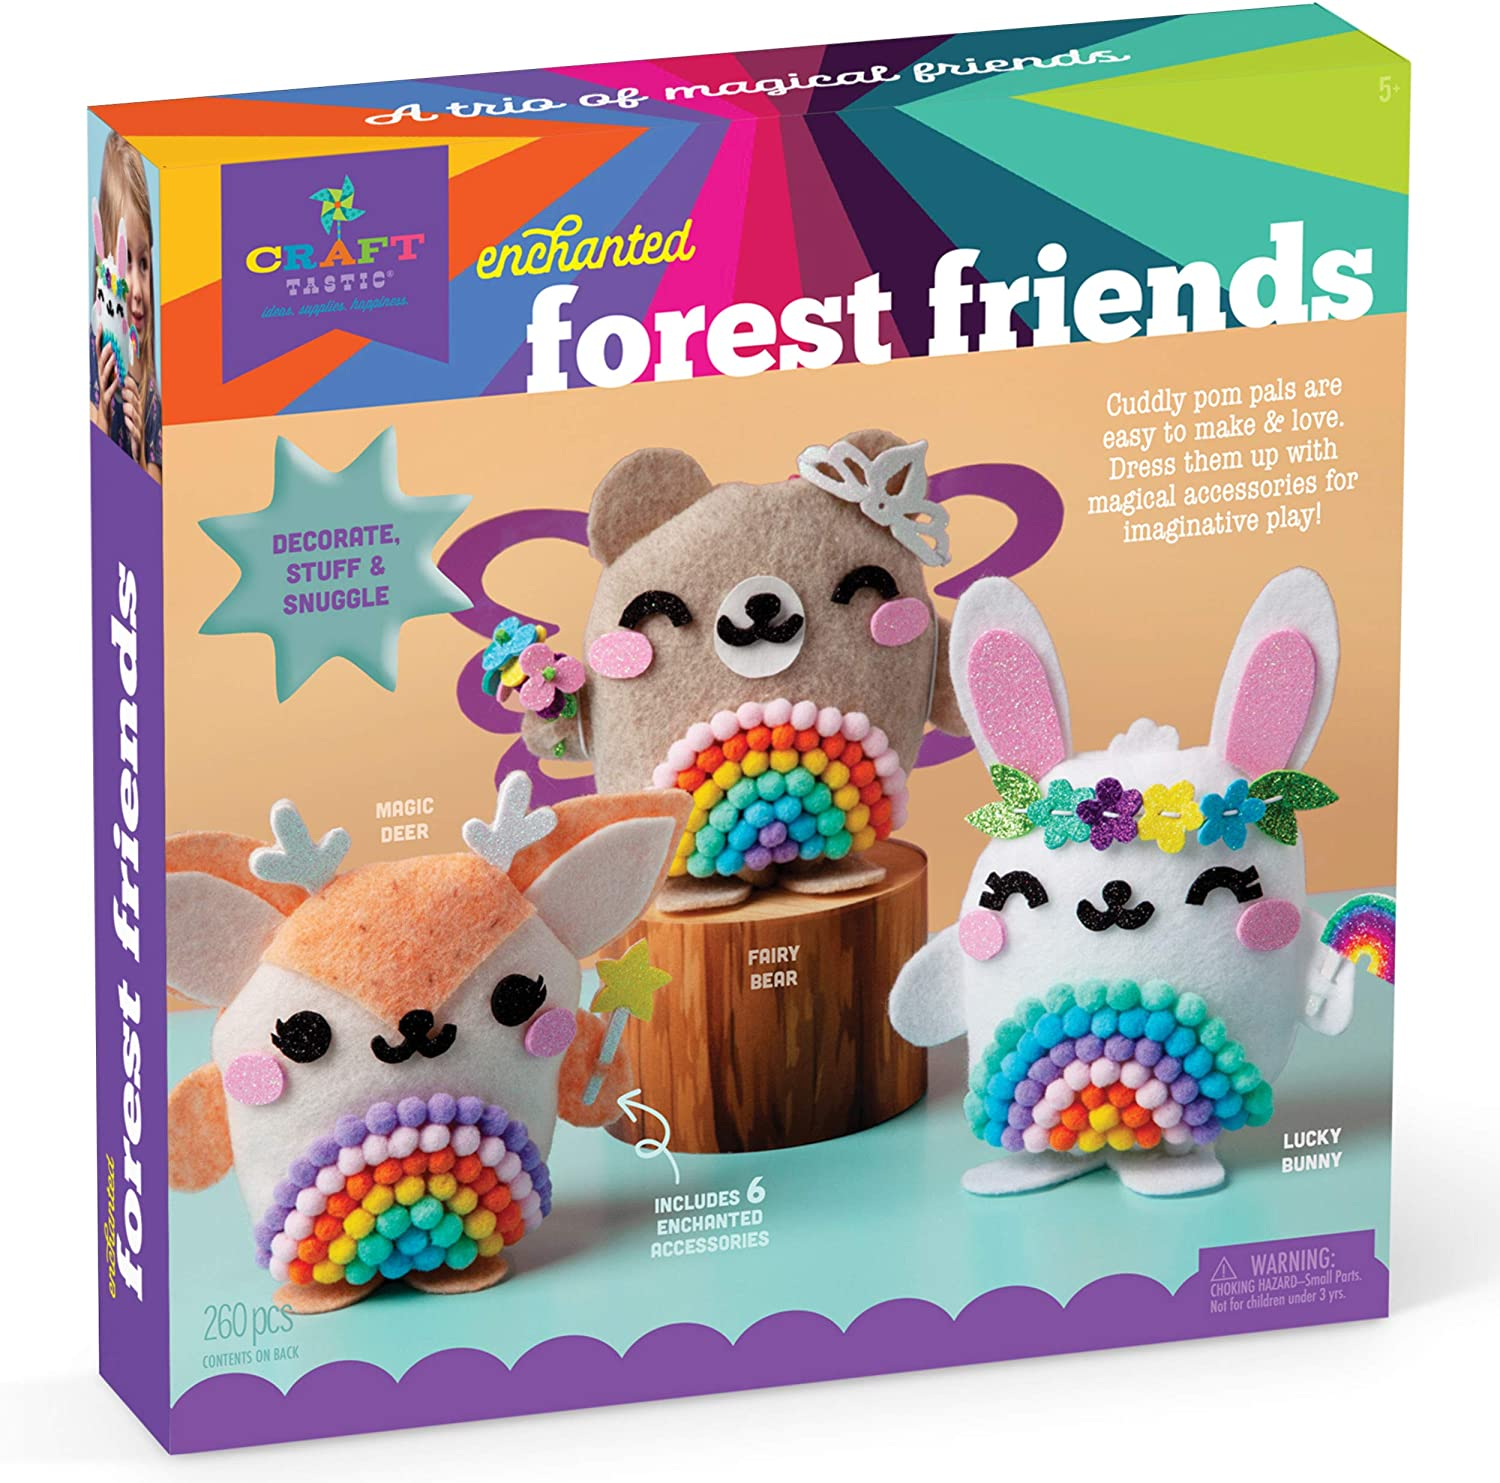 Craft-tastic – DIY Enchanted Forest Friends – Craft Kit Makes 3 Pompom Stuffed Animals – Fairy Bear, Lucky Bunny & Magic Deer